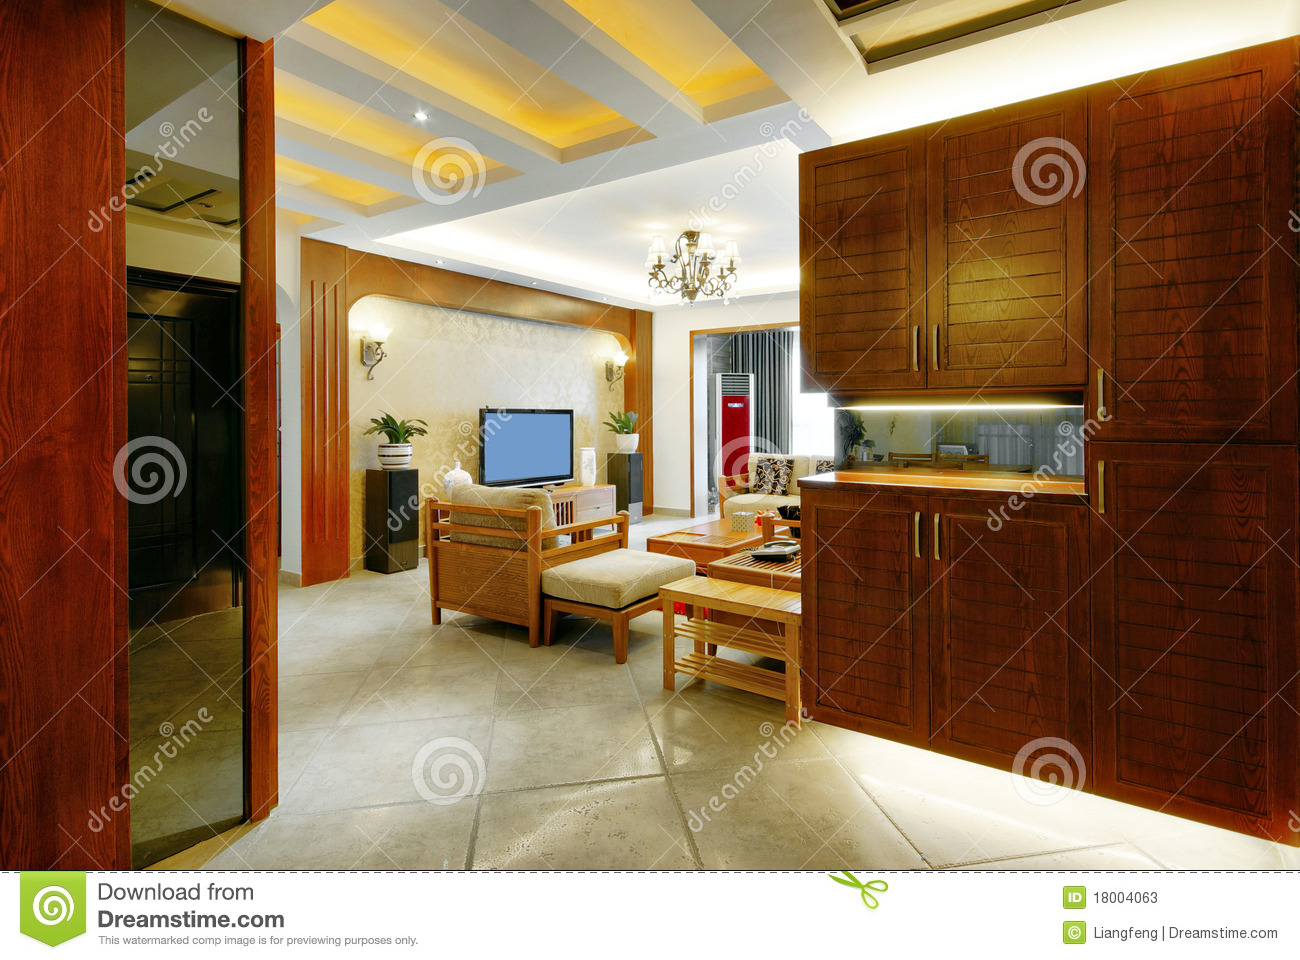 Beautiful Home Decor Stock Image. Image Of Layout, Home